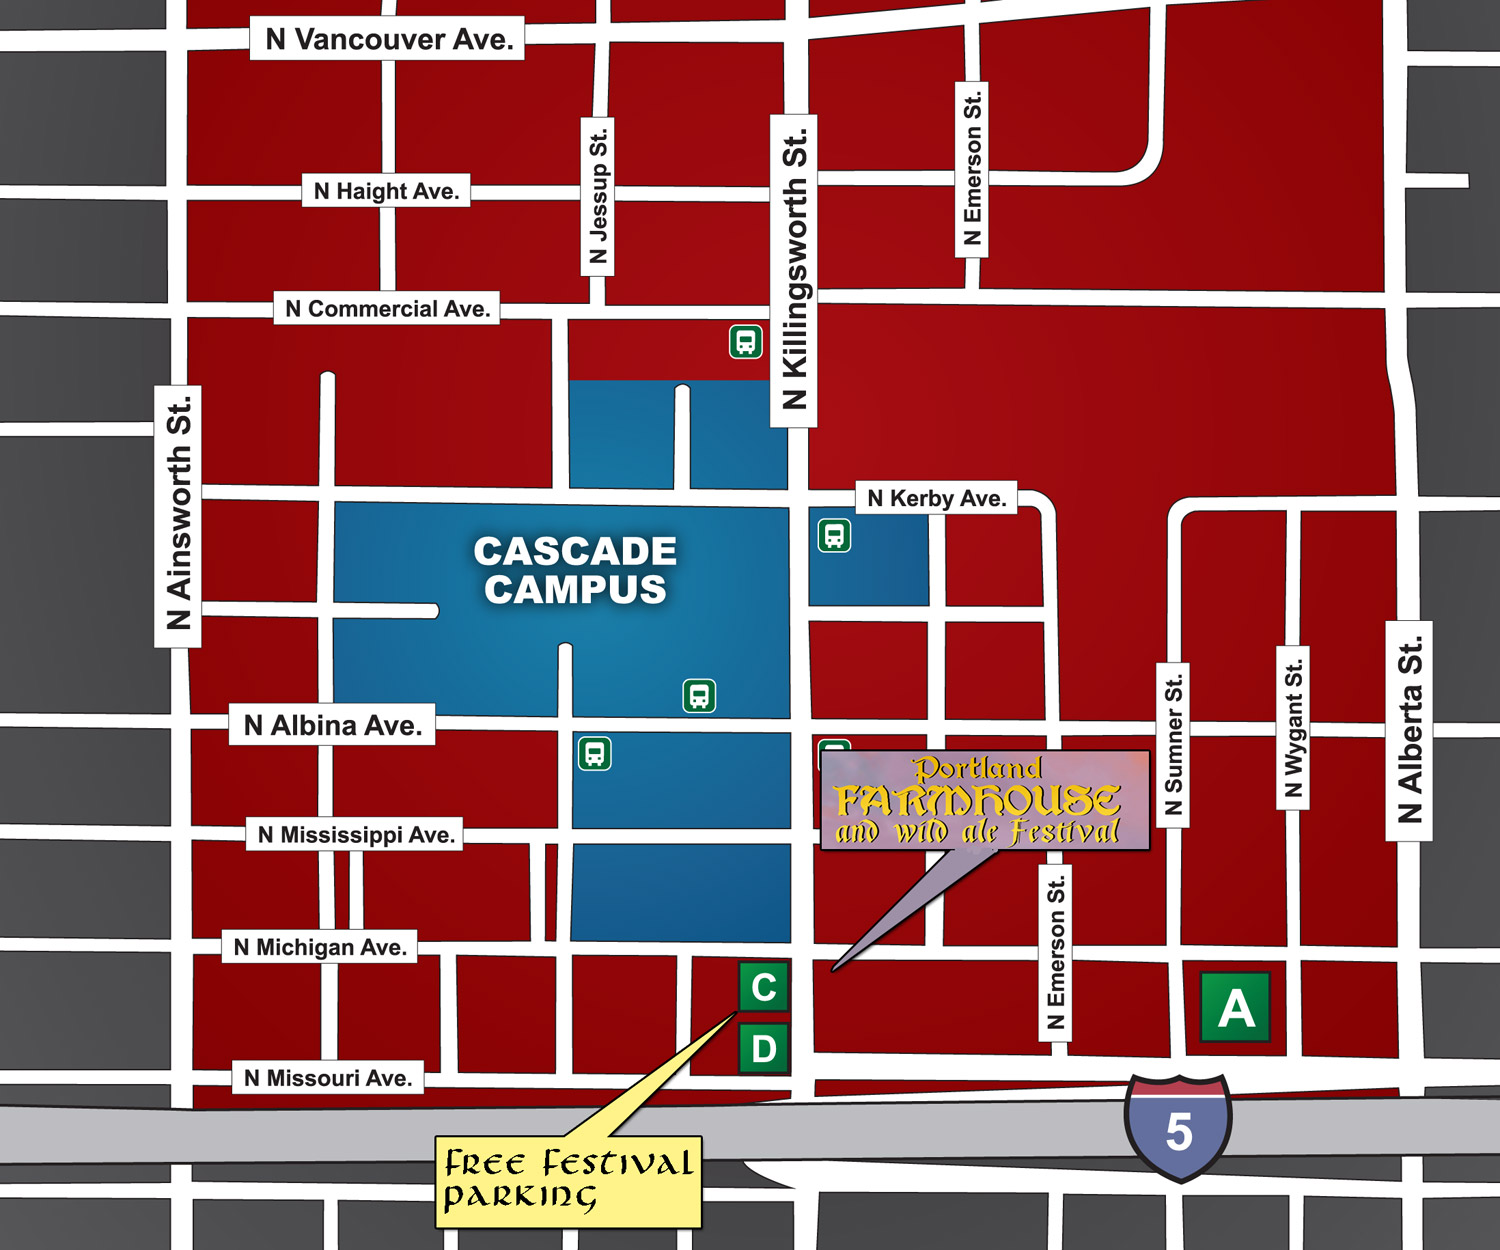 2015-Farmhouse-Fest-Parking-Map.jpg